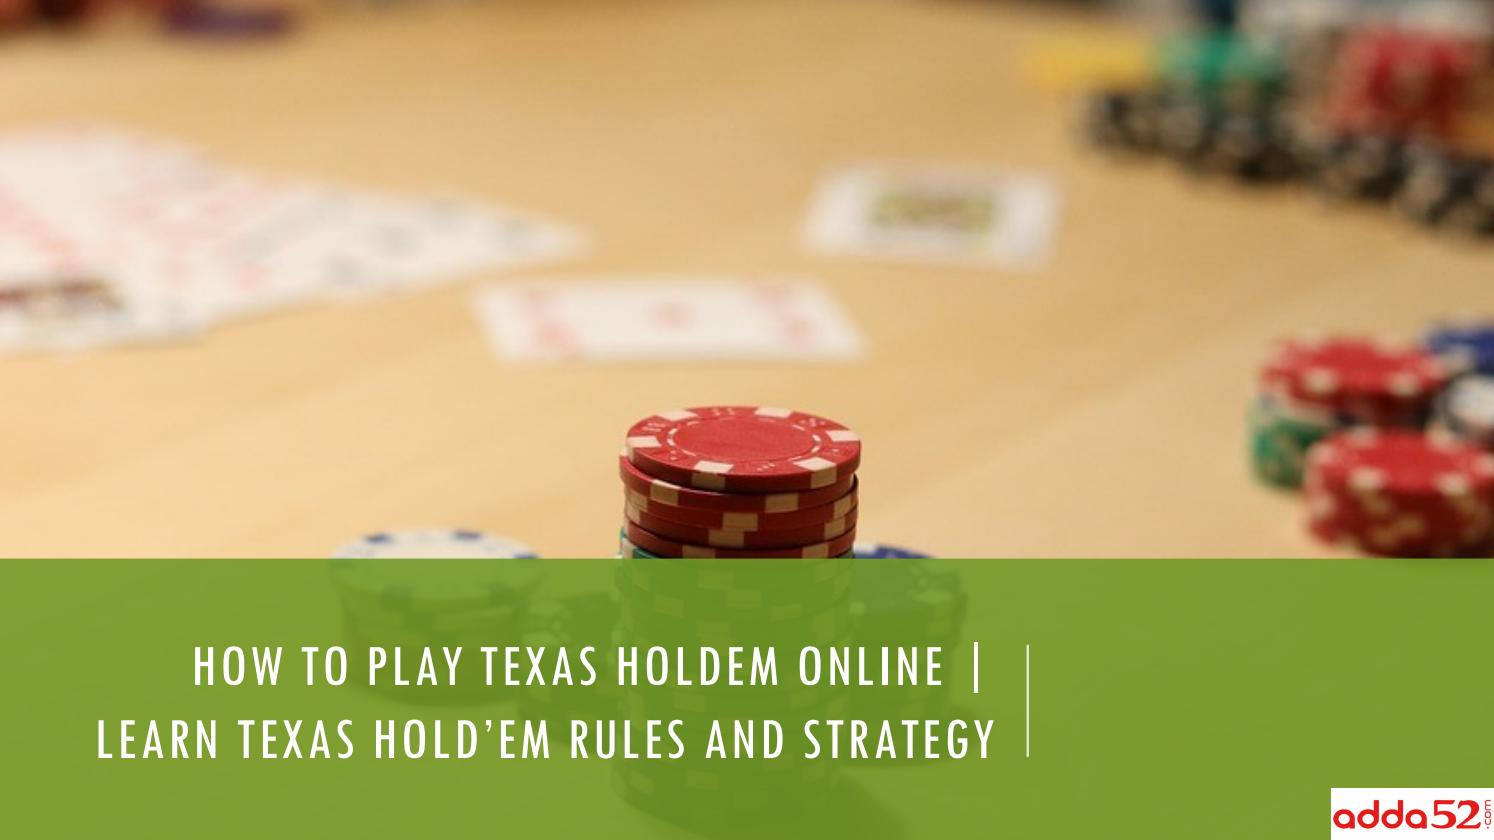 How To Play Texas Holdem Online Learn Texas Hold Em Rules And Strategy By Adda52 Issuu